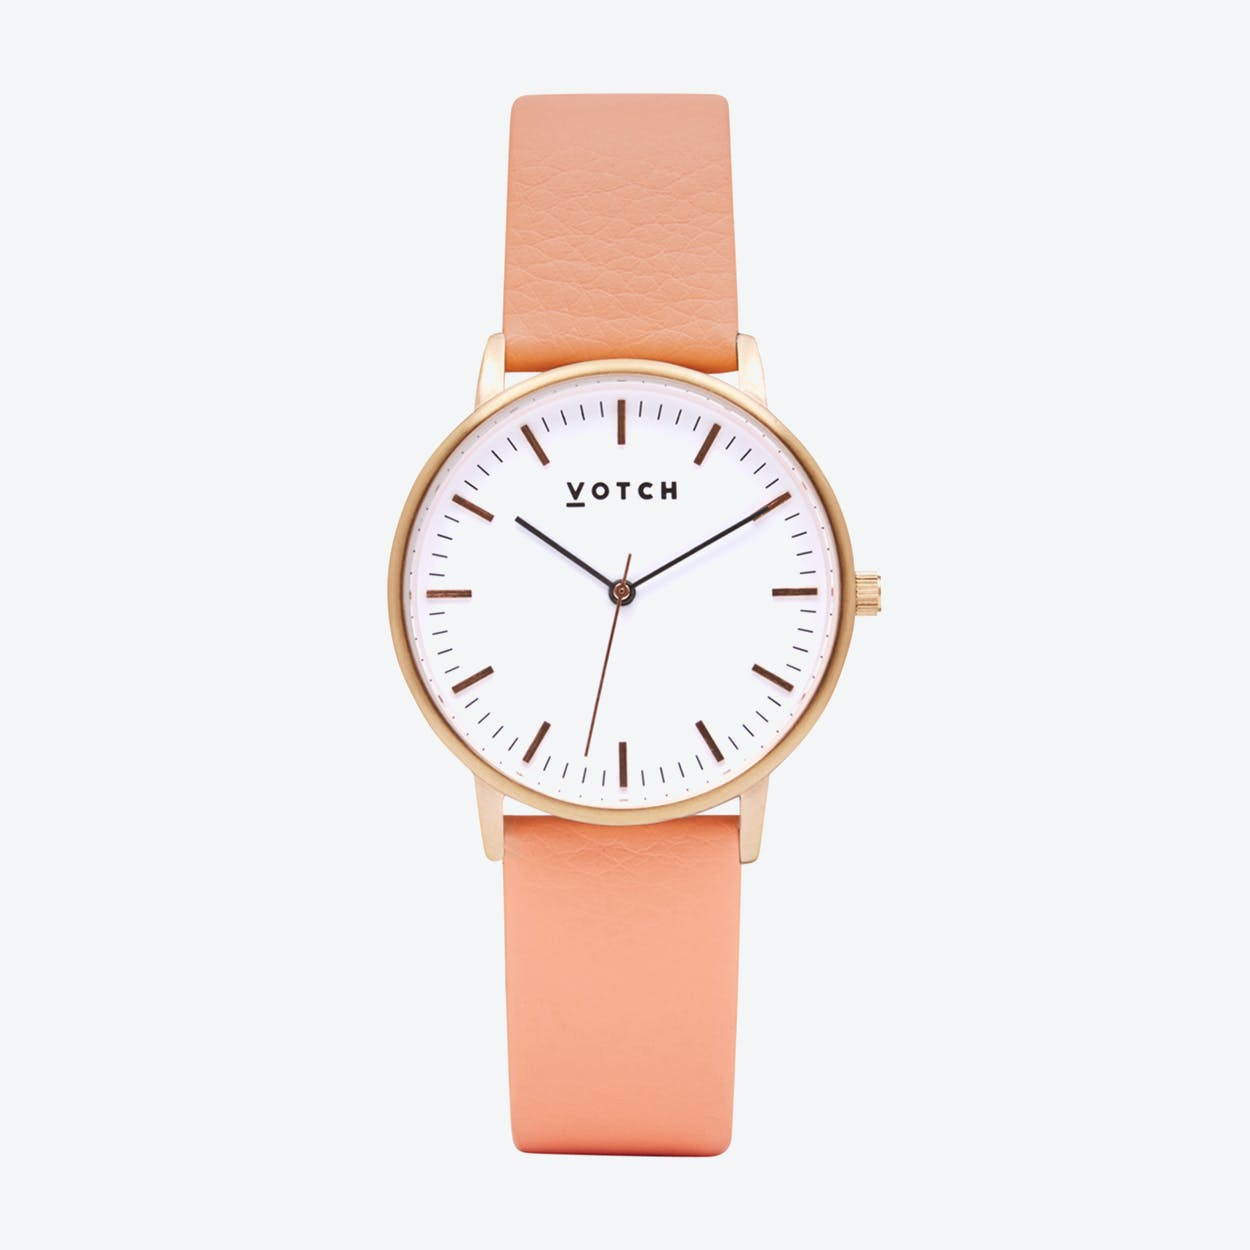 Intense Classic Watch in Rose Gold with White Face and Coral Vegan Leather Strap, 36mm